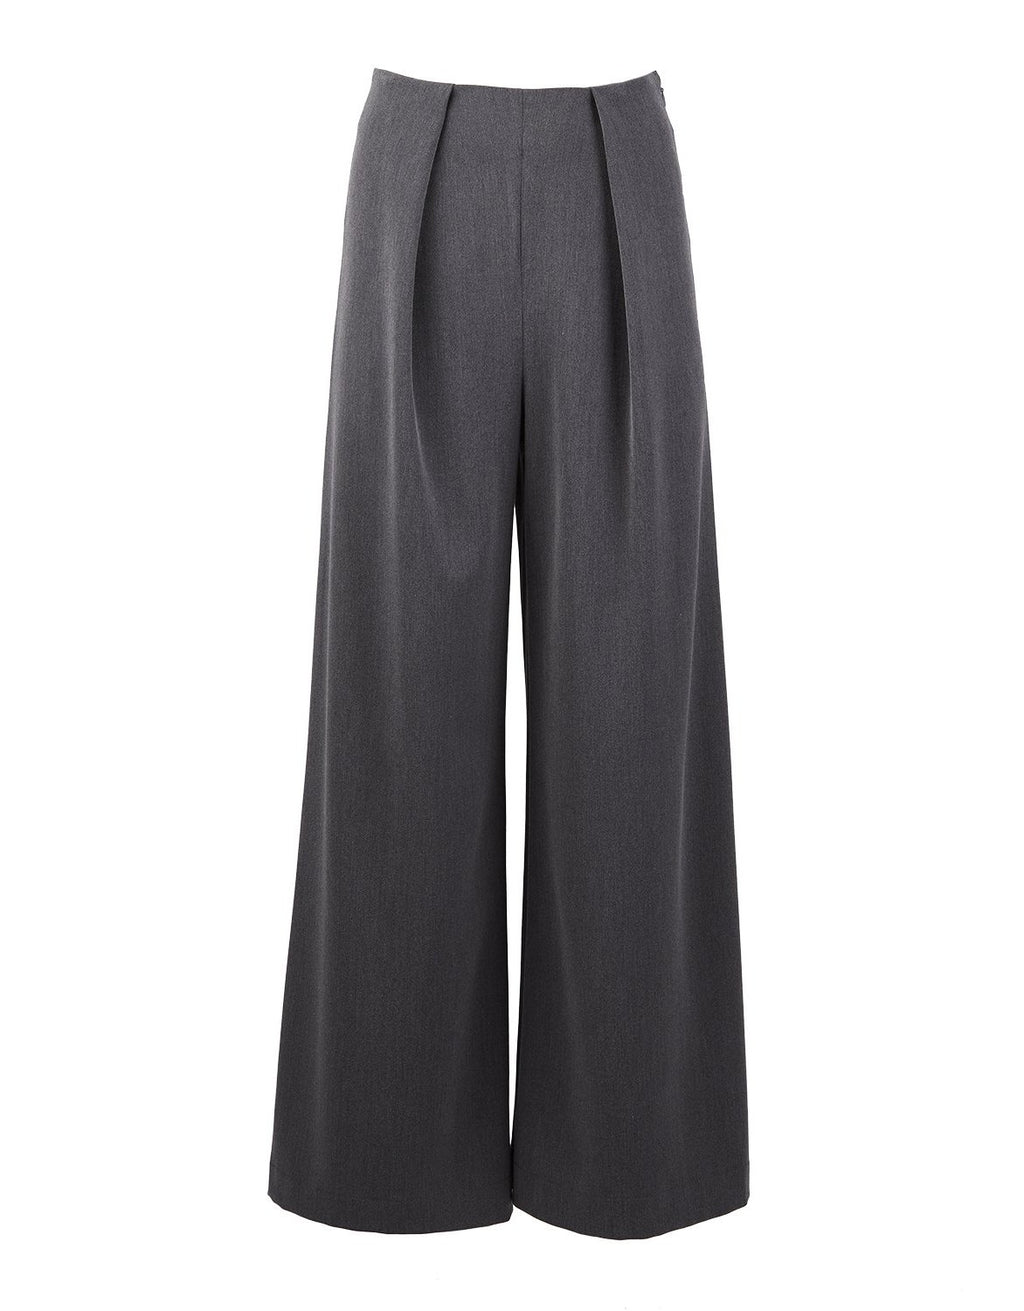 Whispering Wind Coat Pants